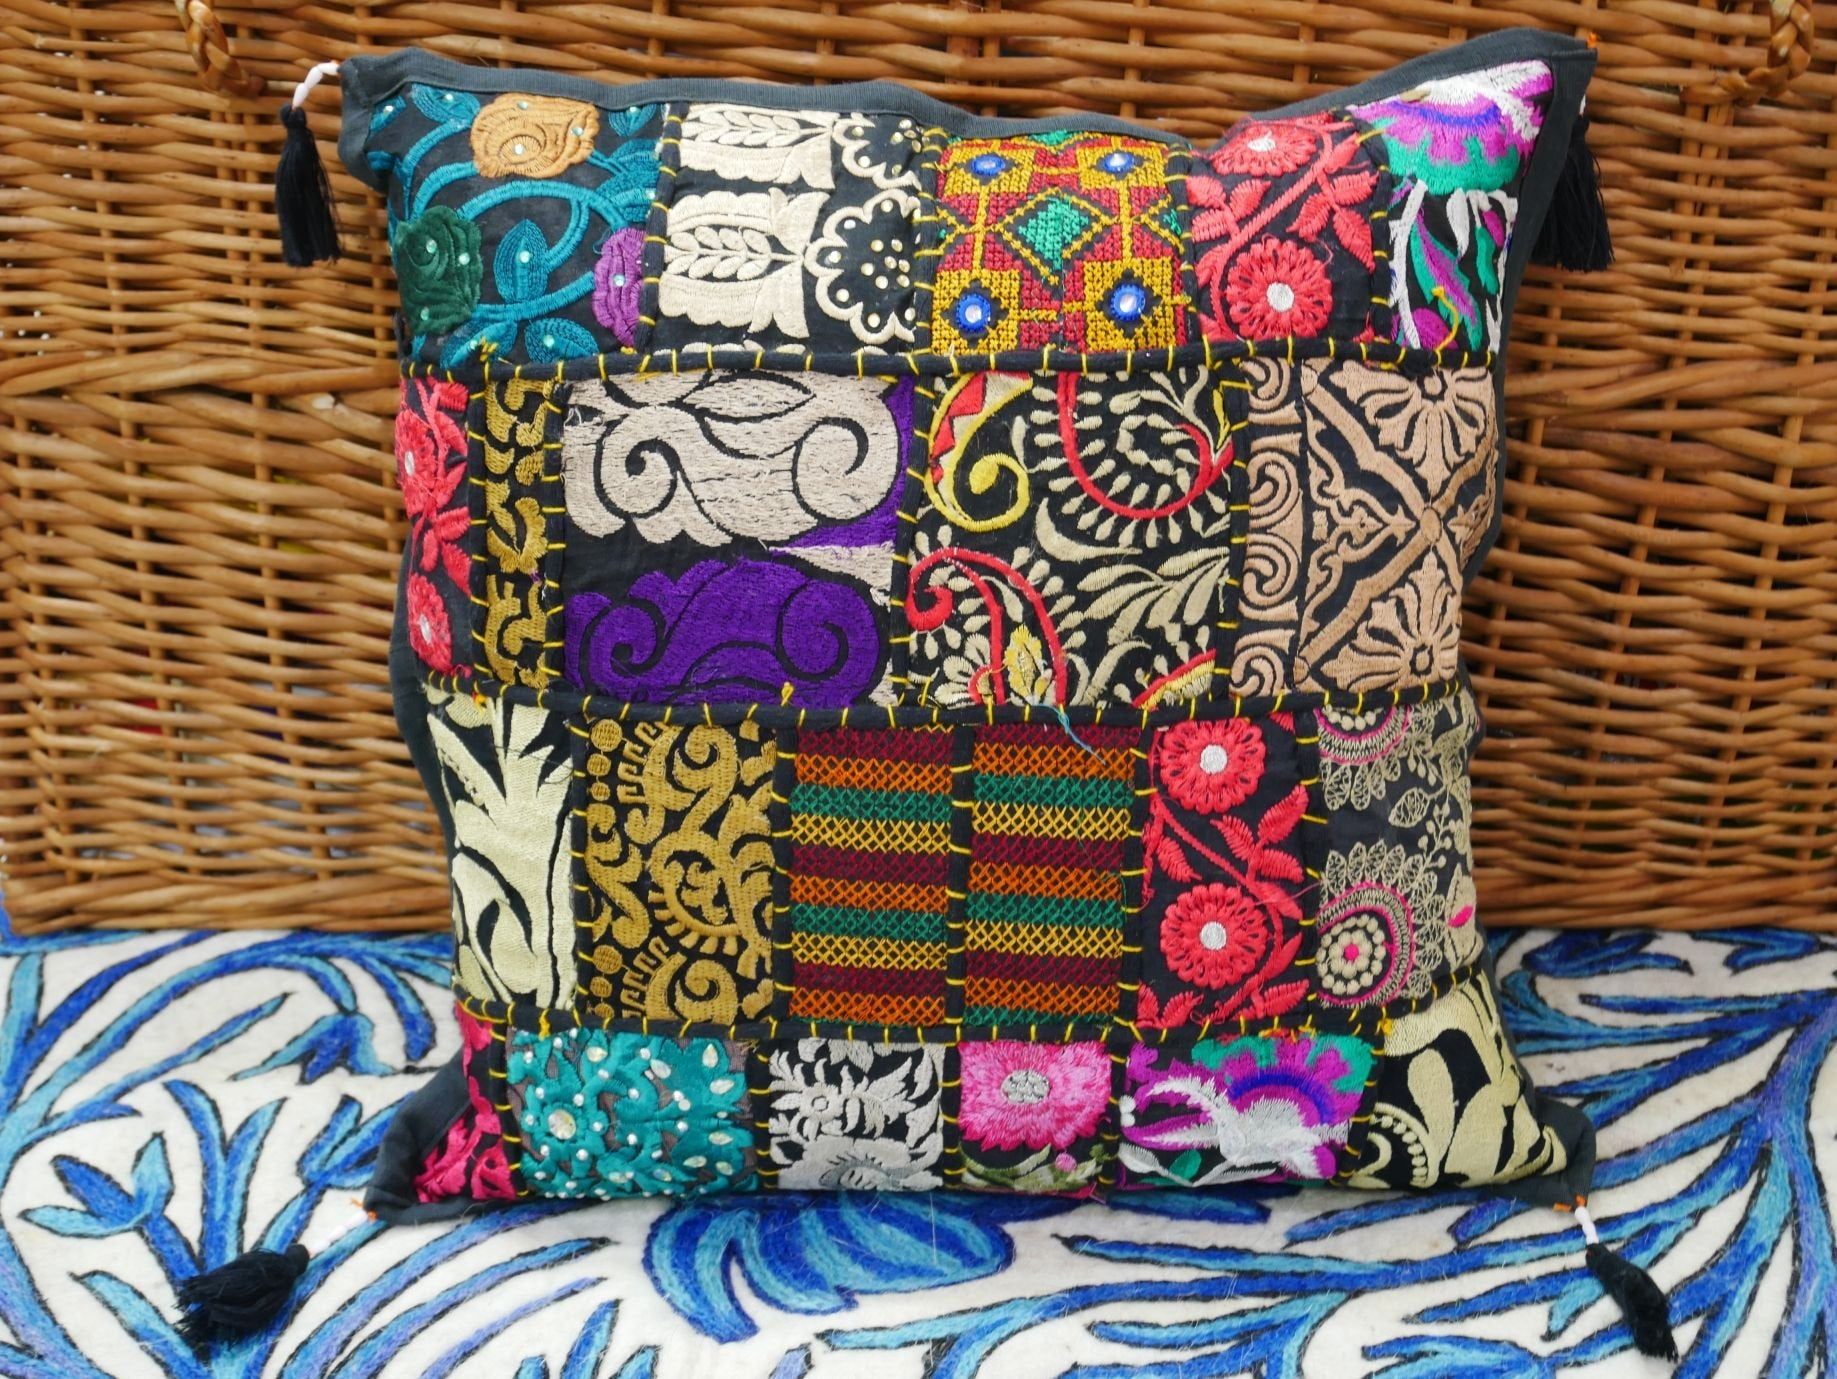 Colorful cushion cover - Patchwork pillow case - decorative throw pillow made of vintage sarees